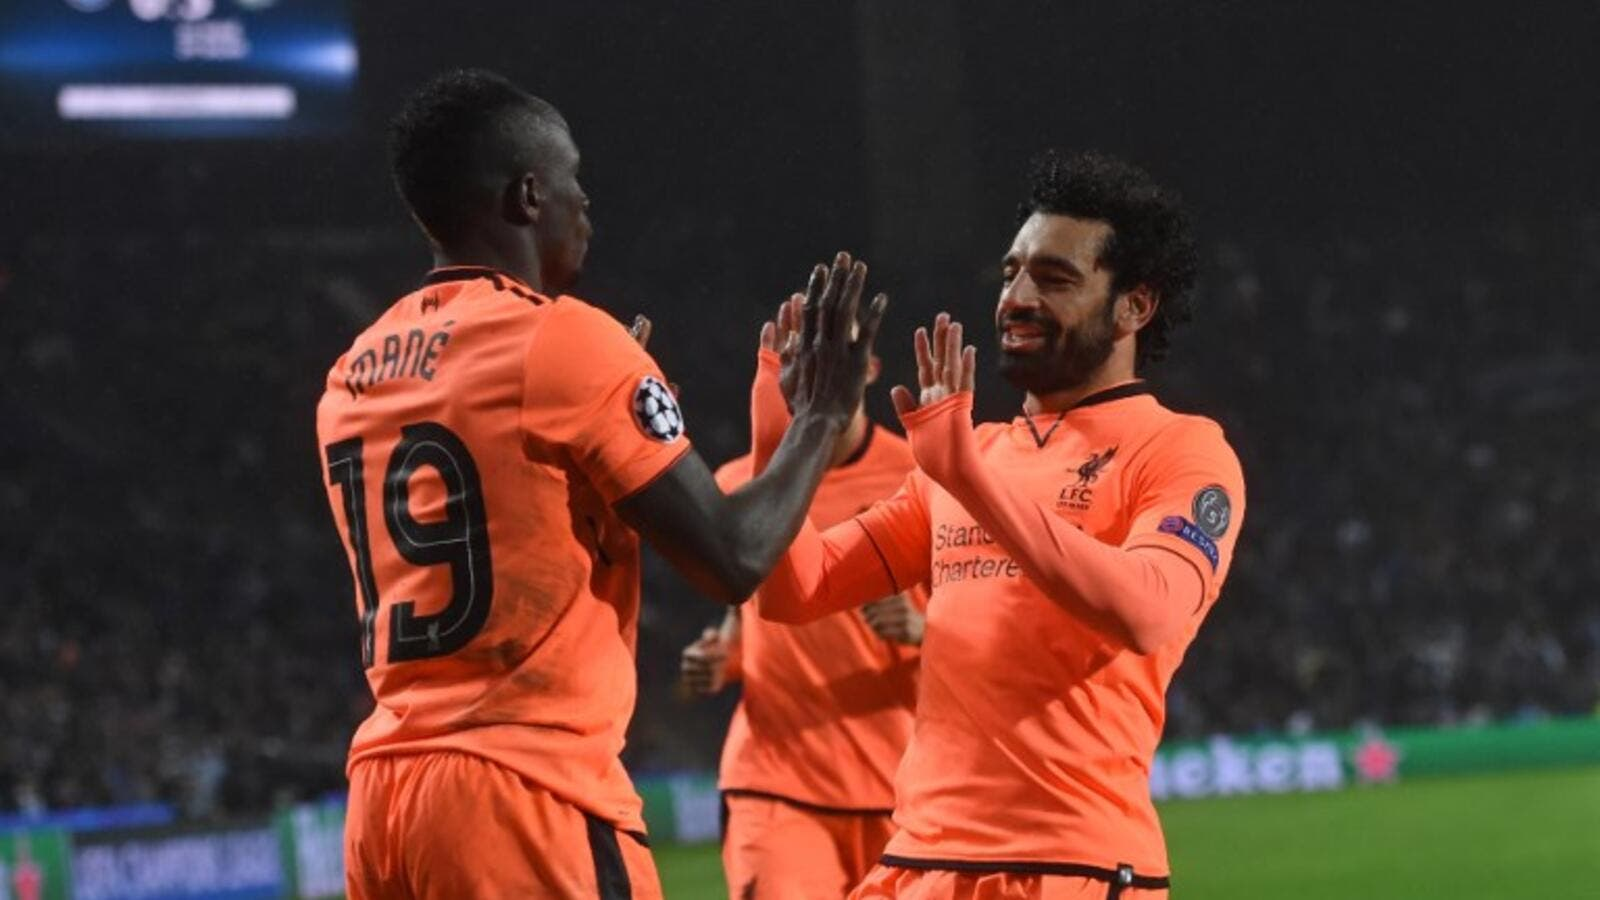 The Reds' fearsome attacking unit has been in dazzling form of late, with impressed team-mates at Anfield among those quick to sing their praises